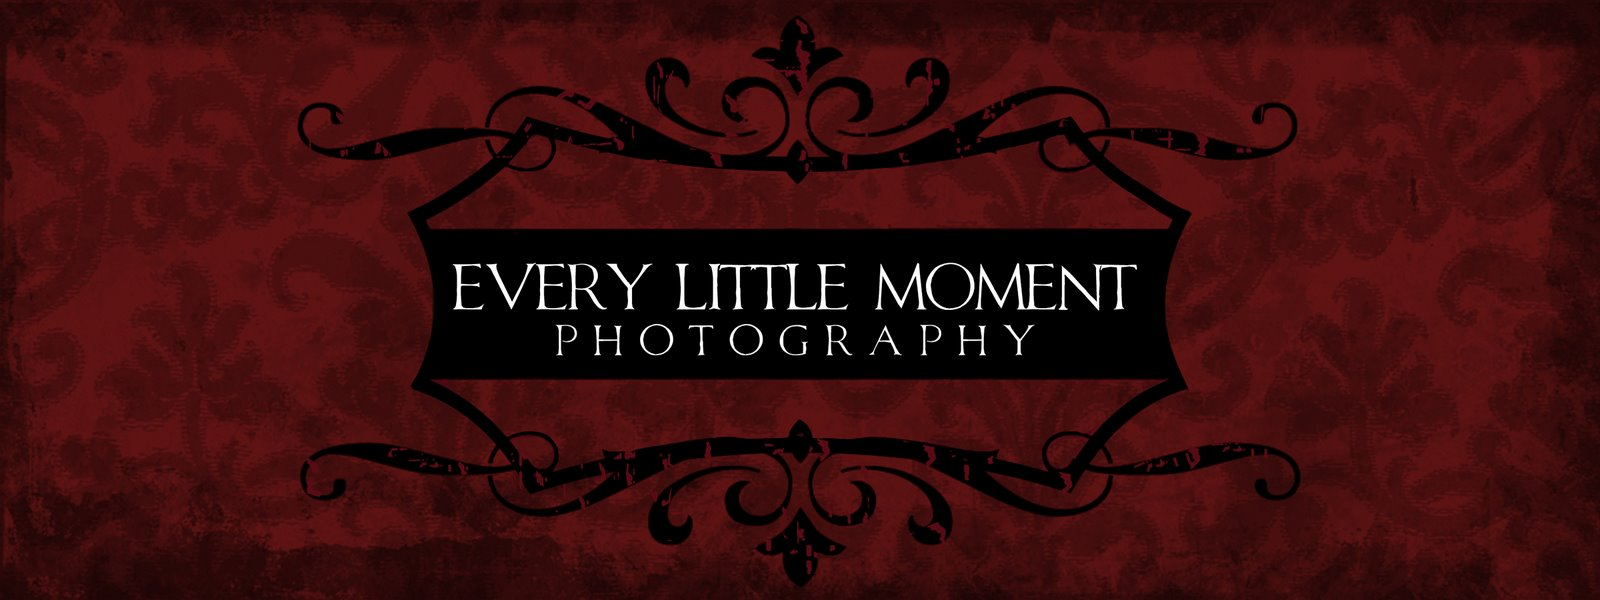 Every Little Moment